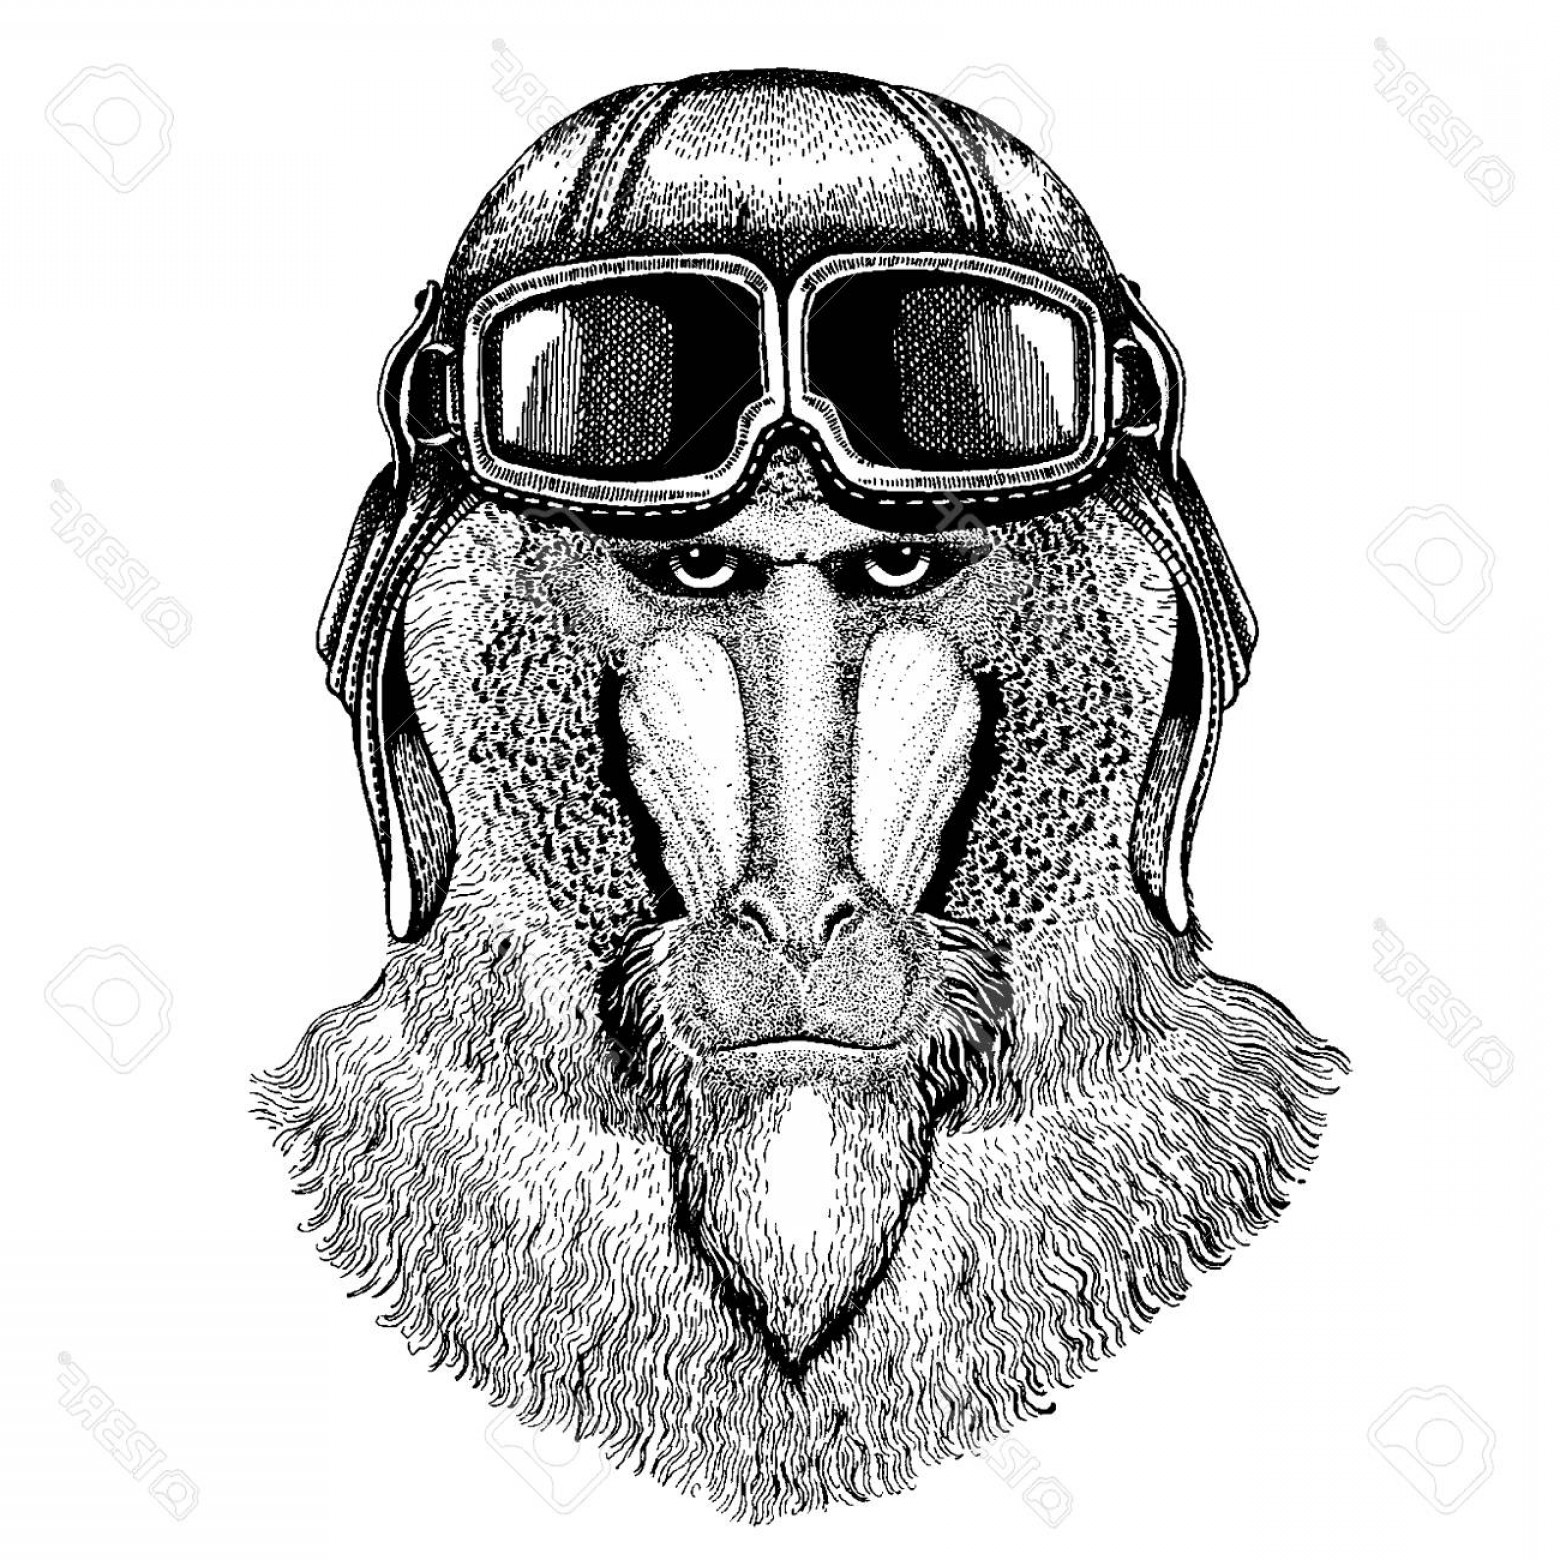 Aviator Vector Ink Drawings: Photostock Vector Animal Wearing Aviator Helmet With Glasses Vector Picture Monkey Baboon Dog Ape Ape Hand Drawn Image